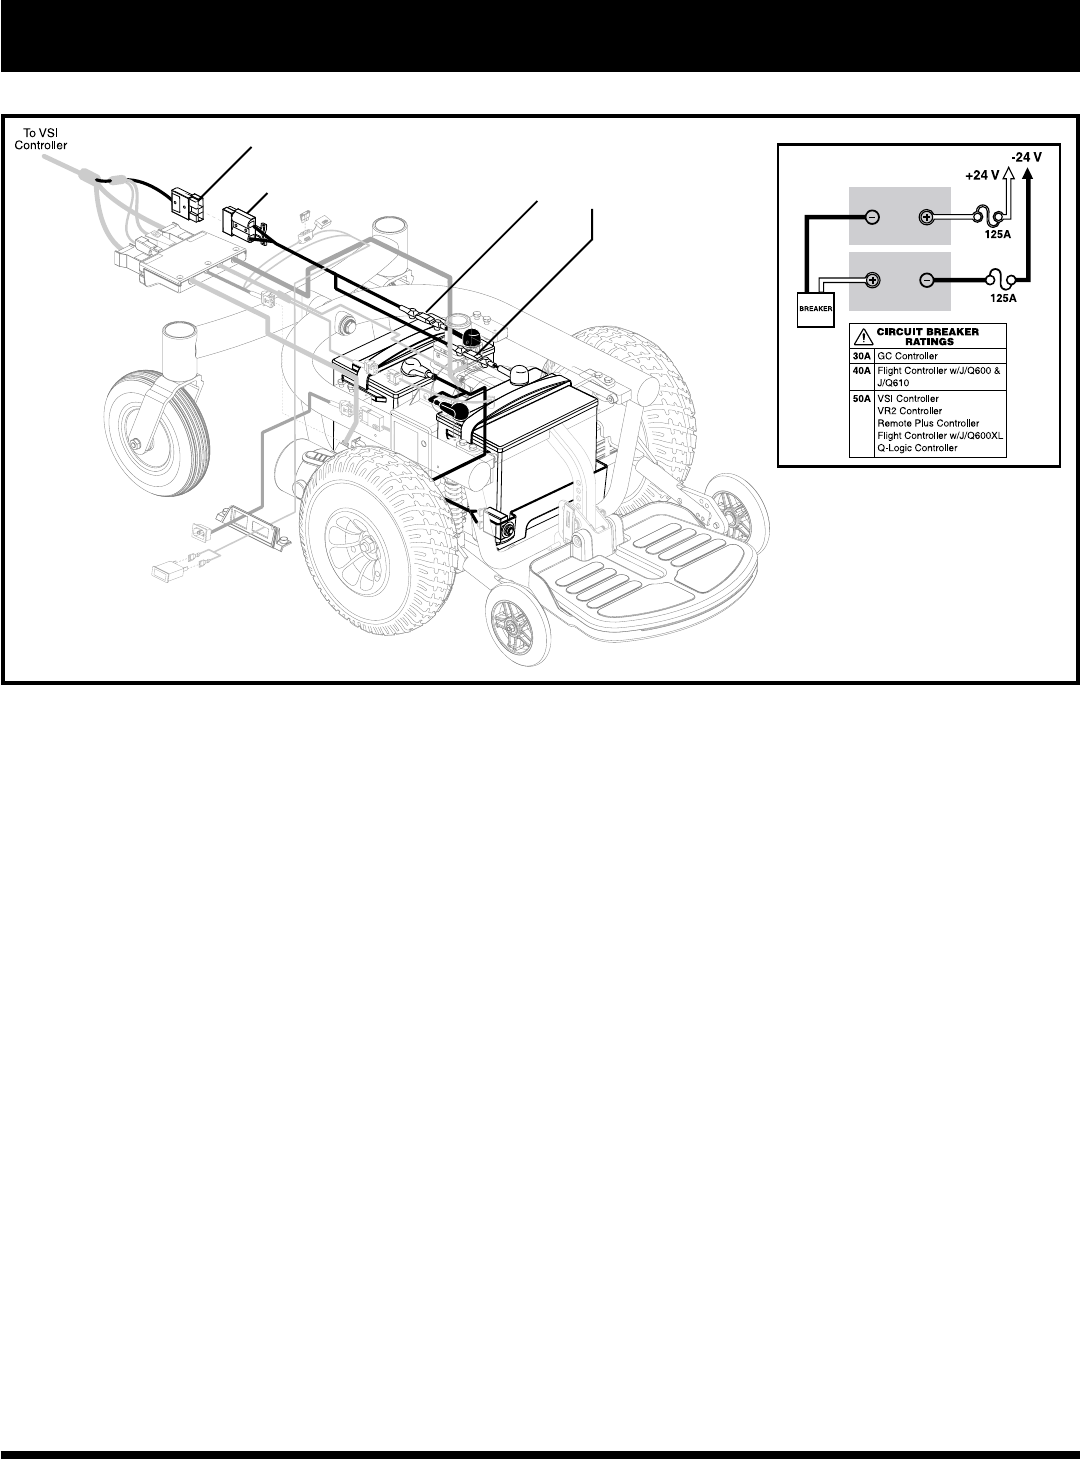 55cd0a64 9f56 4b5b bb6f 66cc883674a7 bg2c page 44 of pride mobility mobility aid 1103 ultra user guide jazzy 1103 ultra wiring diagram at soozxer.org